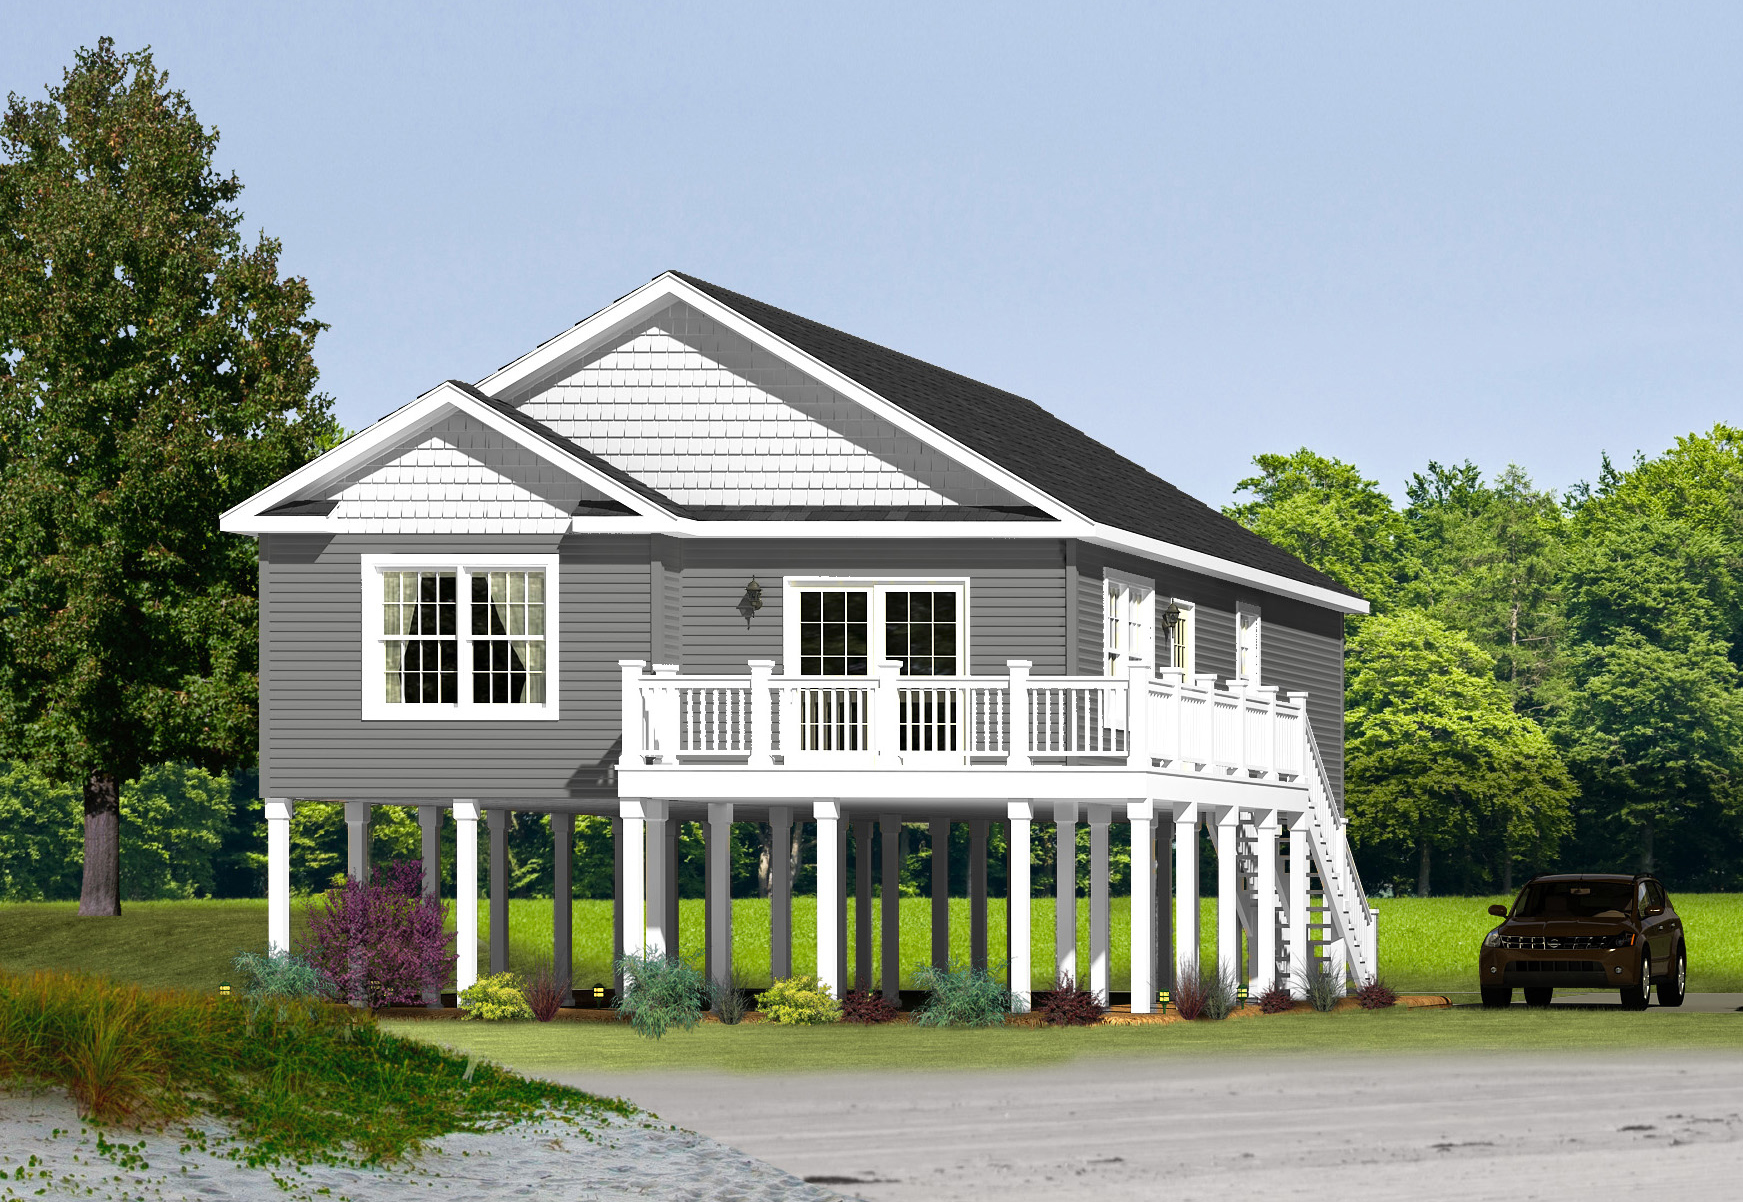 Pennwest Homes Coastal Shore Collection Modular Home Floor Plans Built By Patriot Home Sales